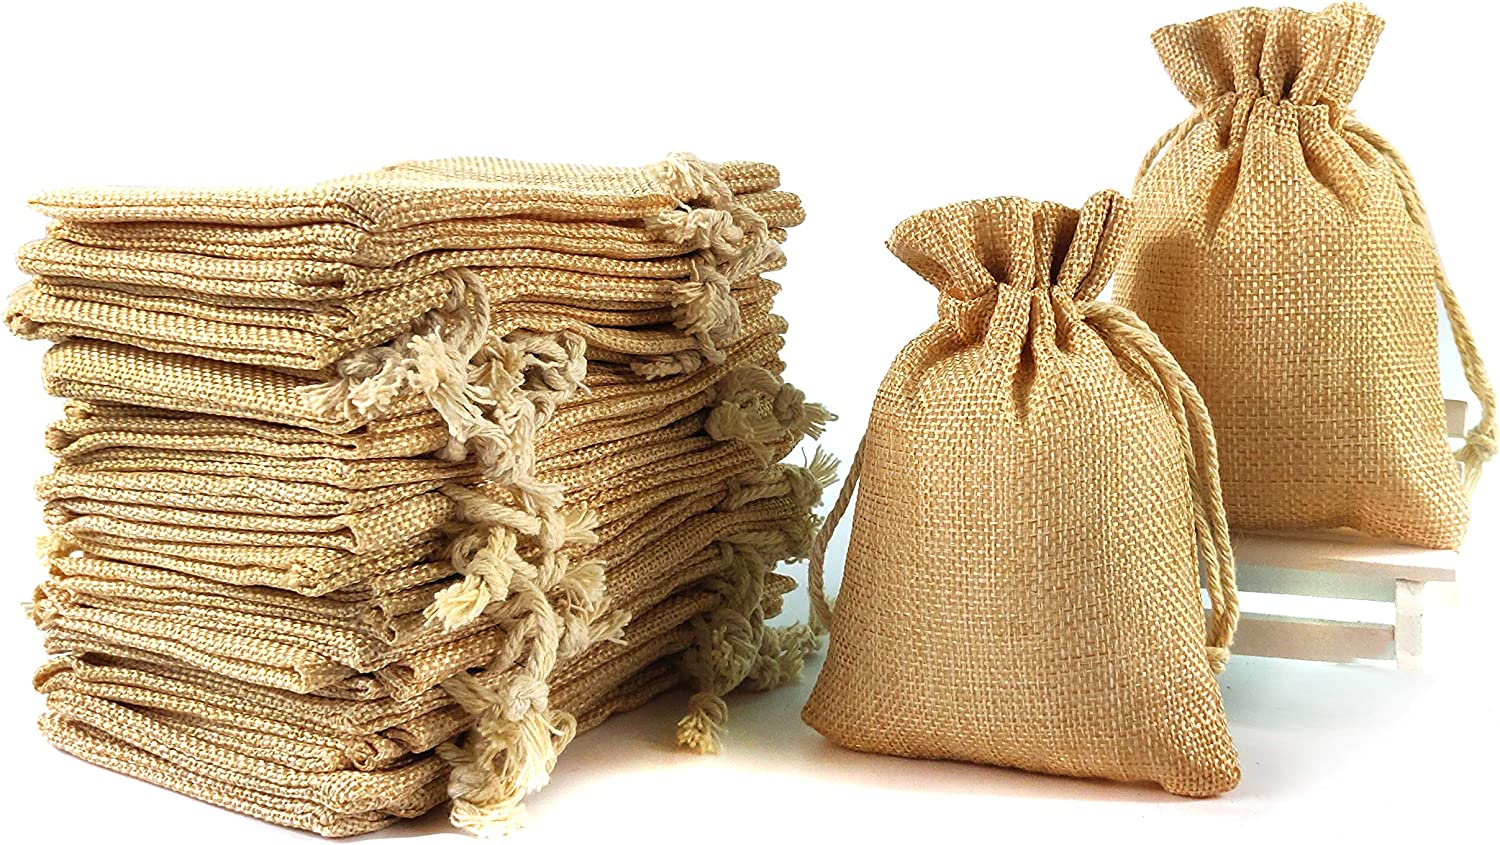 YUXIER Drawstring Bag Burlap Bags Party Favor Bags for Jewelry Wedding Baby Shower Arts Crafts Projects Presents Snacks DIY Decorations 5.3x3.7inch (Brown) -Pack of 30 Drawstring Gift Bags Bulk